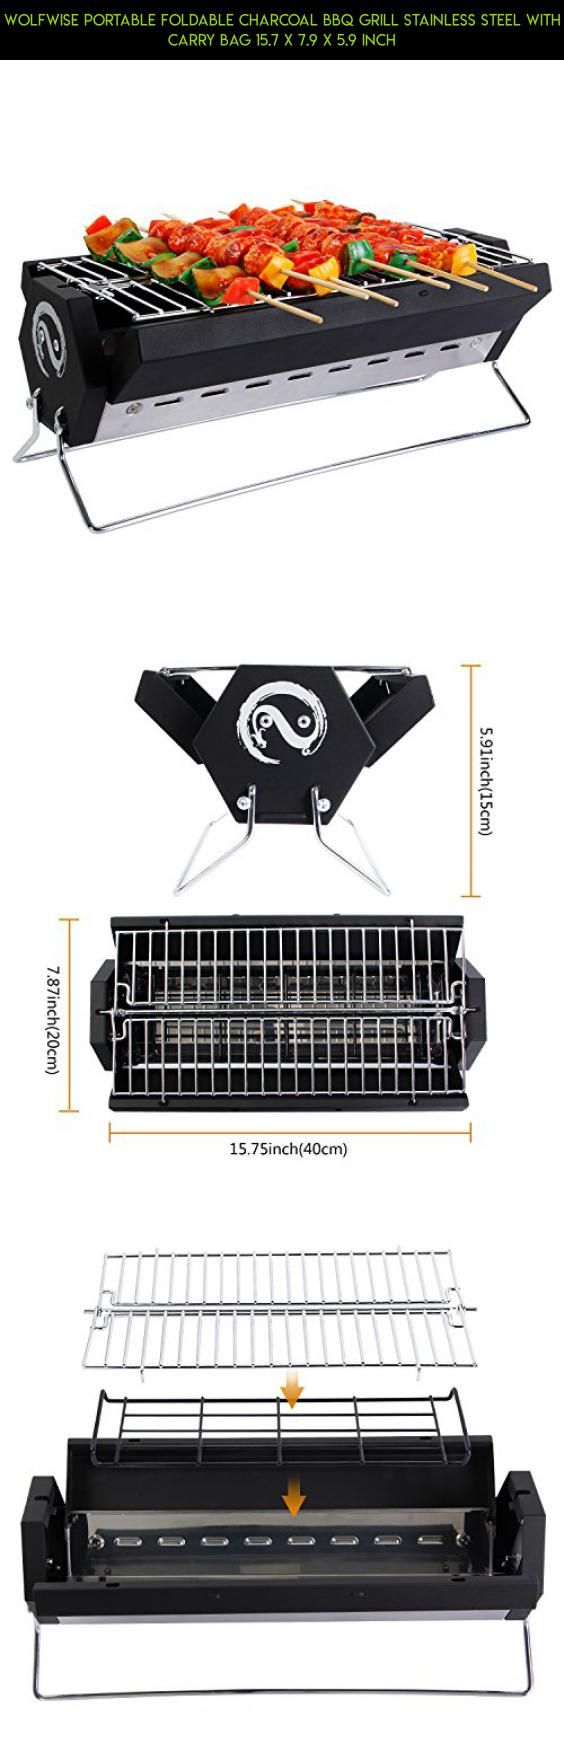 WolfWise Portable Foldable Charcoal BBQ Grill Stainless Steel with Carry Bag 15.7 X 7.9 X 5.9 inch #shopping #parts #technology #products #plans #hibachi #grills #camera #gadgets #tech #drone #racing #kit #fpv